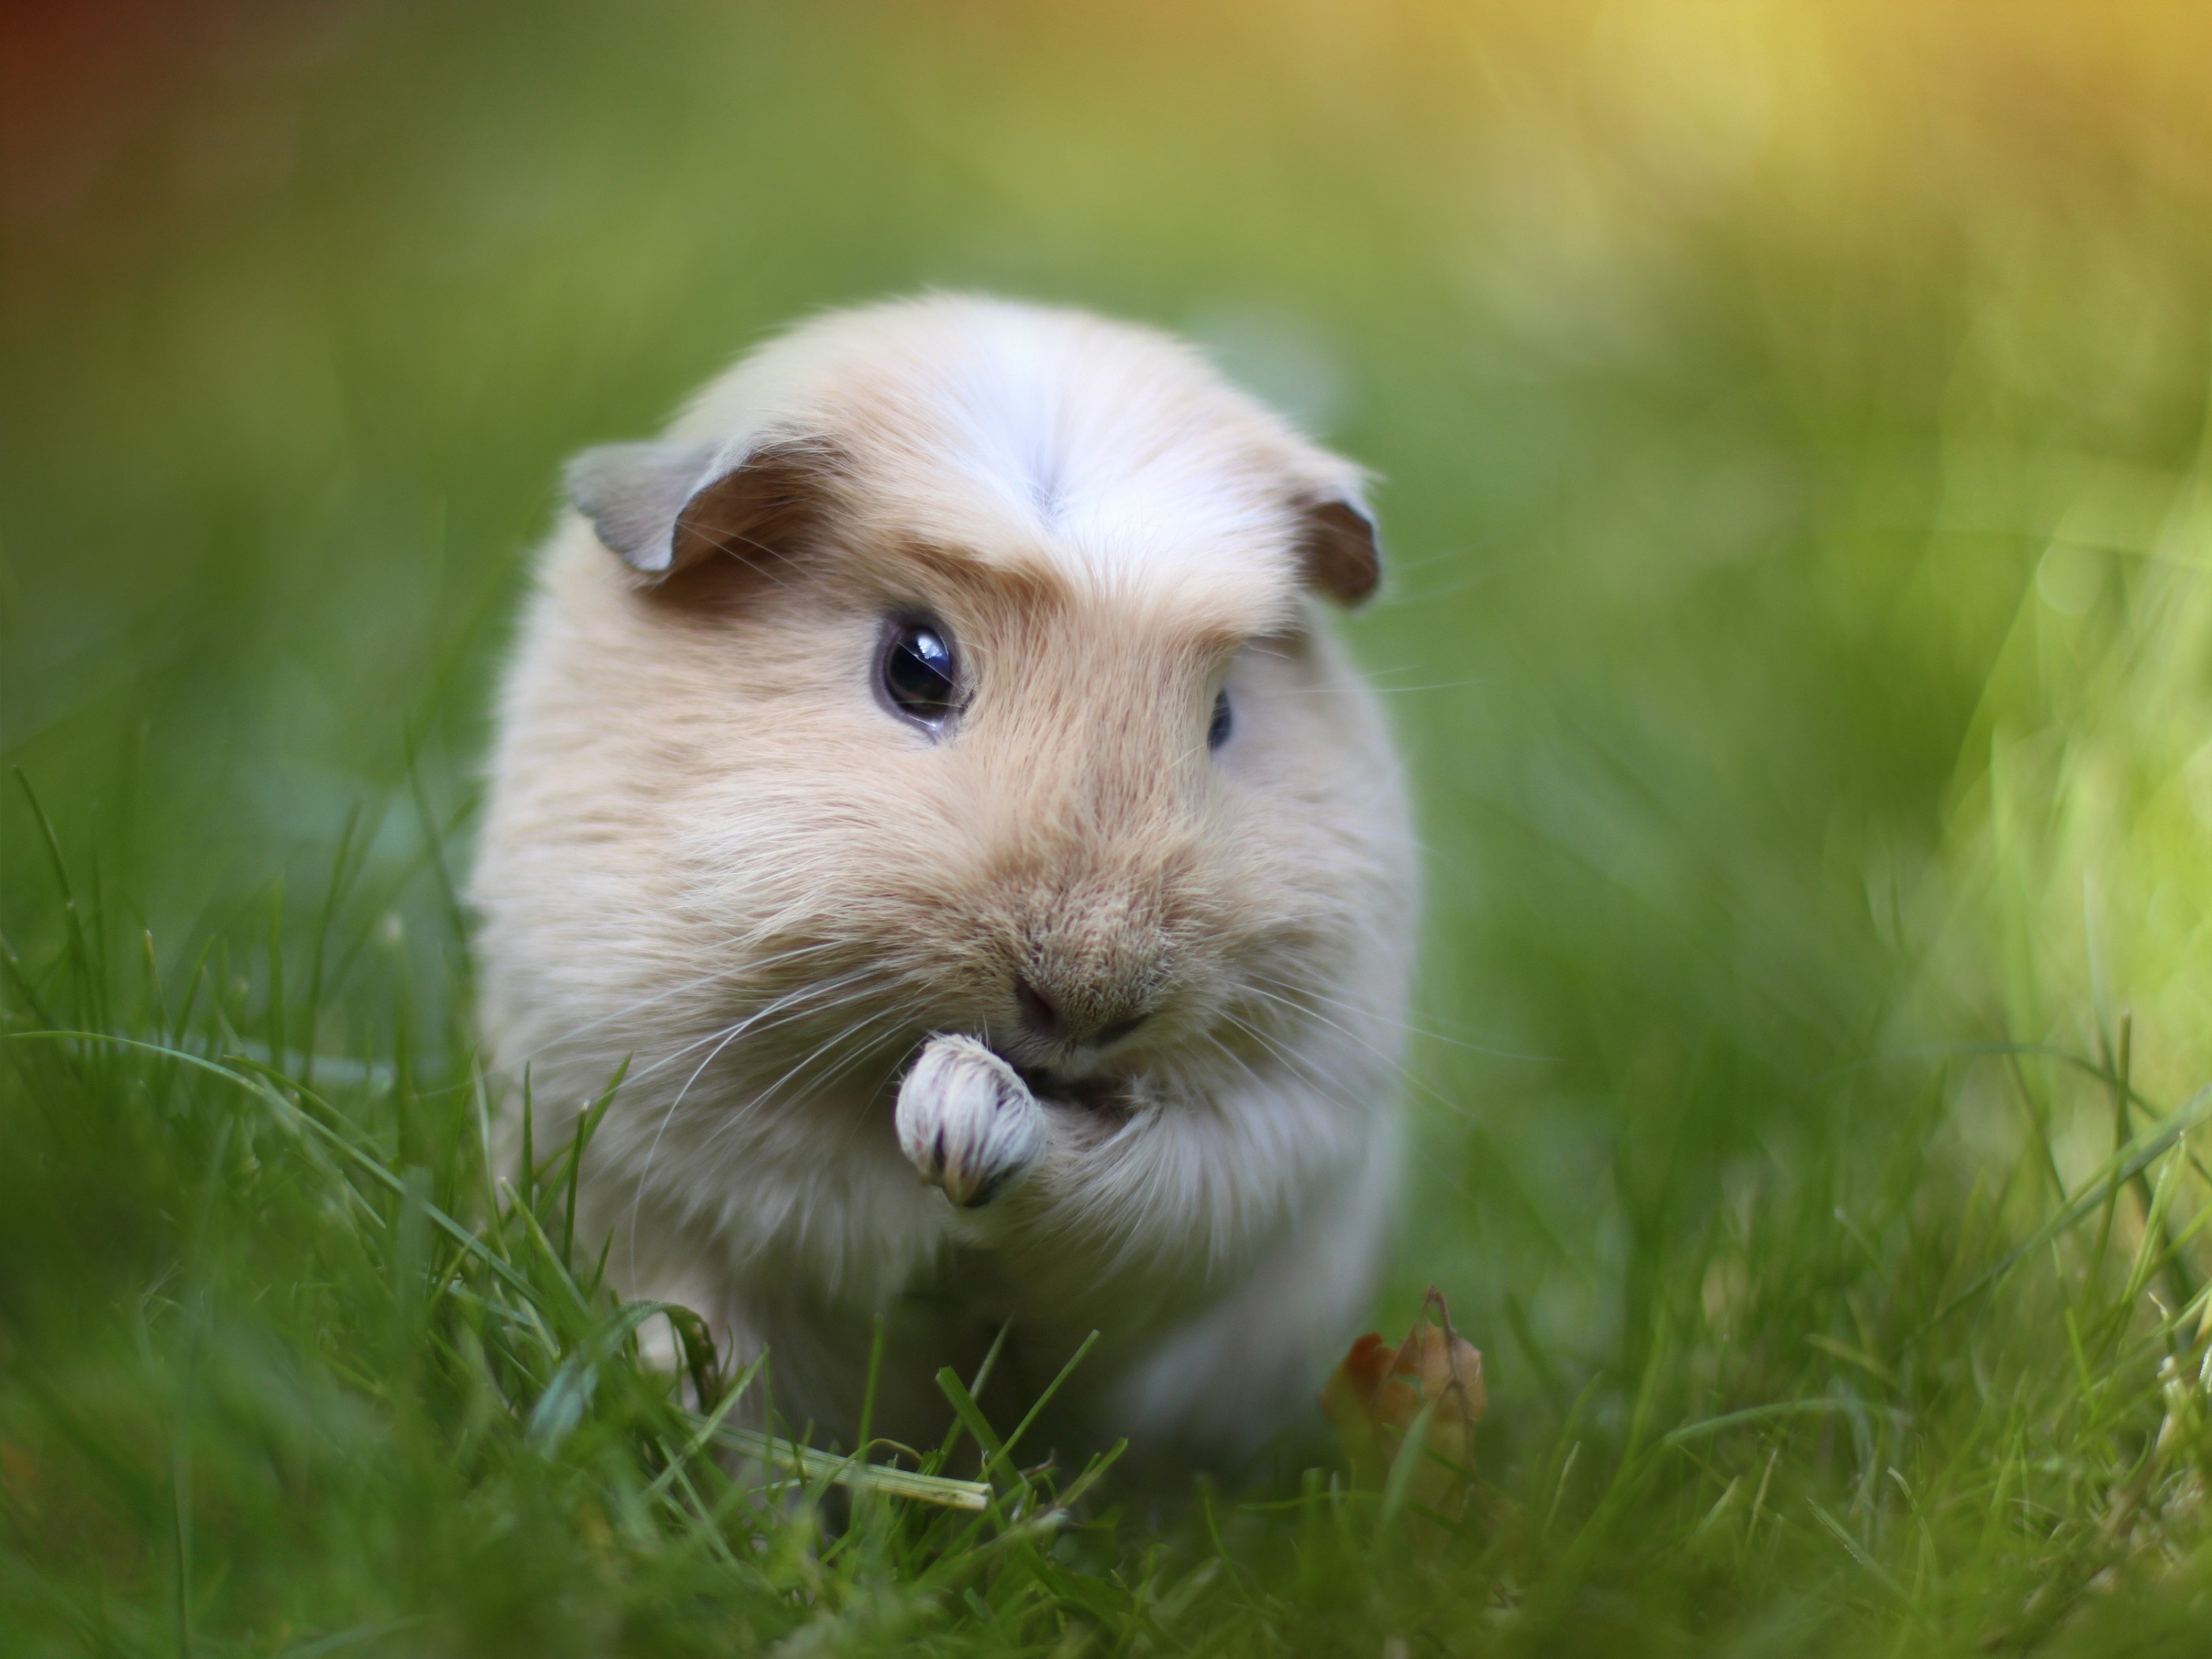 rodent guinea pig close up 184748